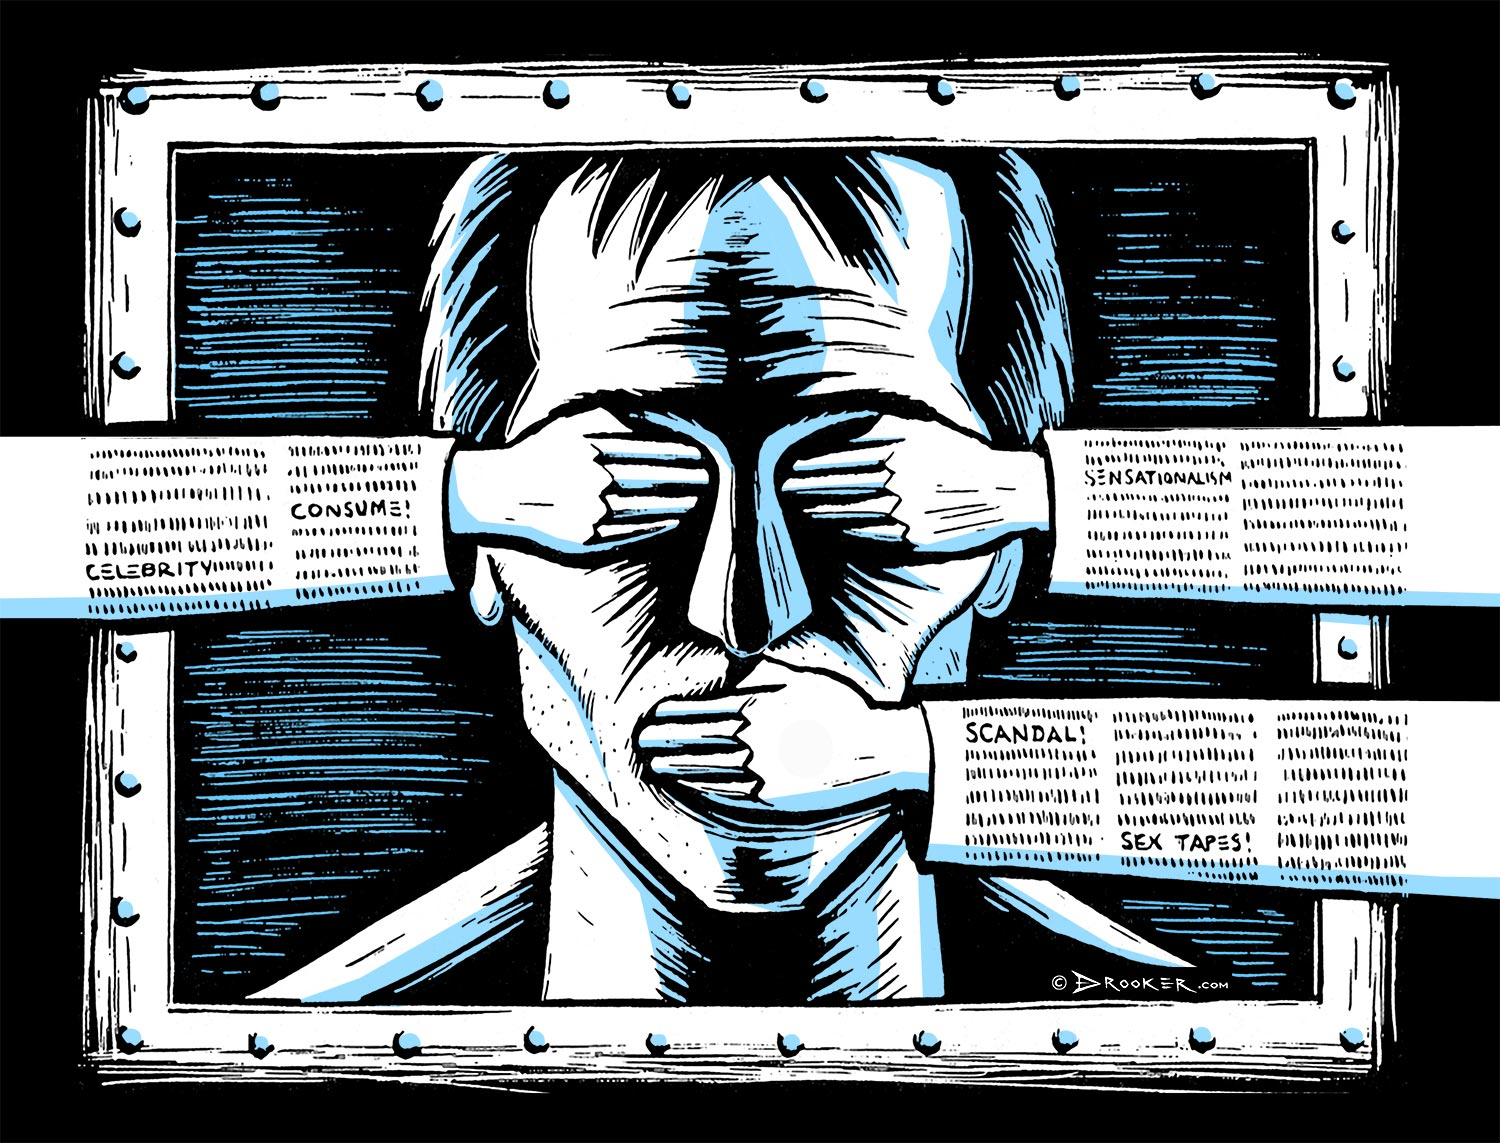 9 July: STOP! It's the Speech Police    - Index on Censorship Index